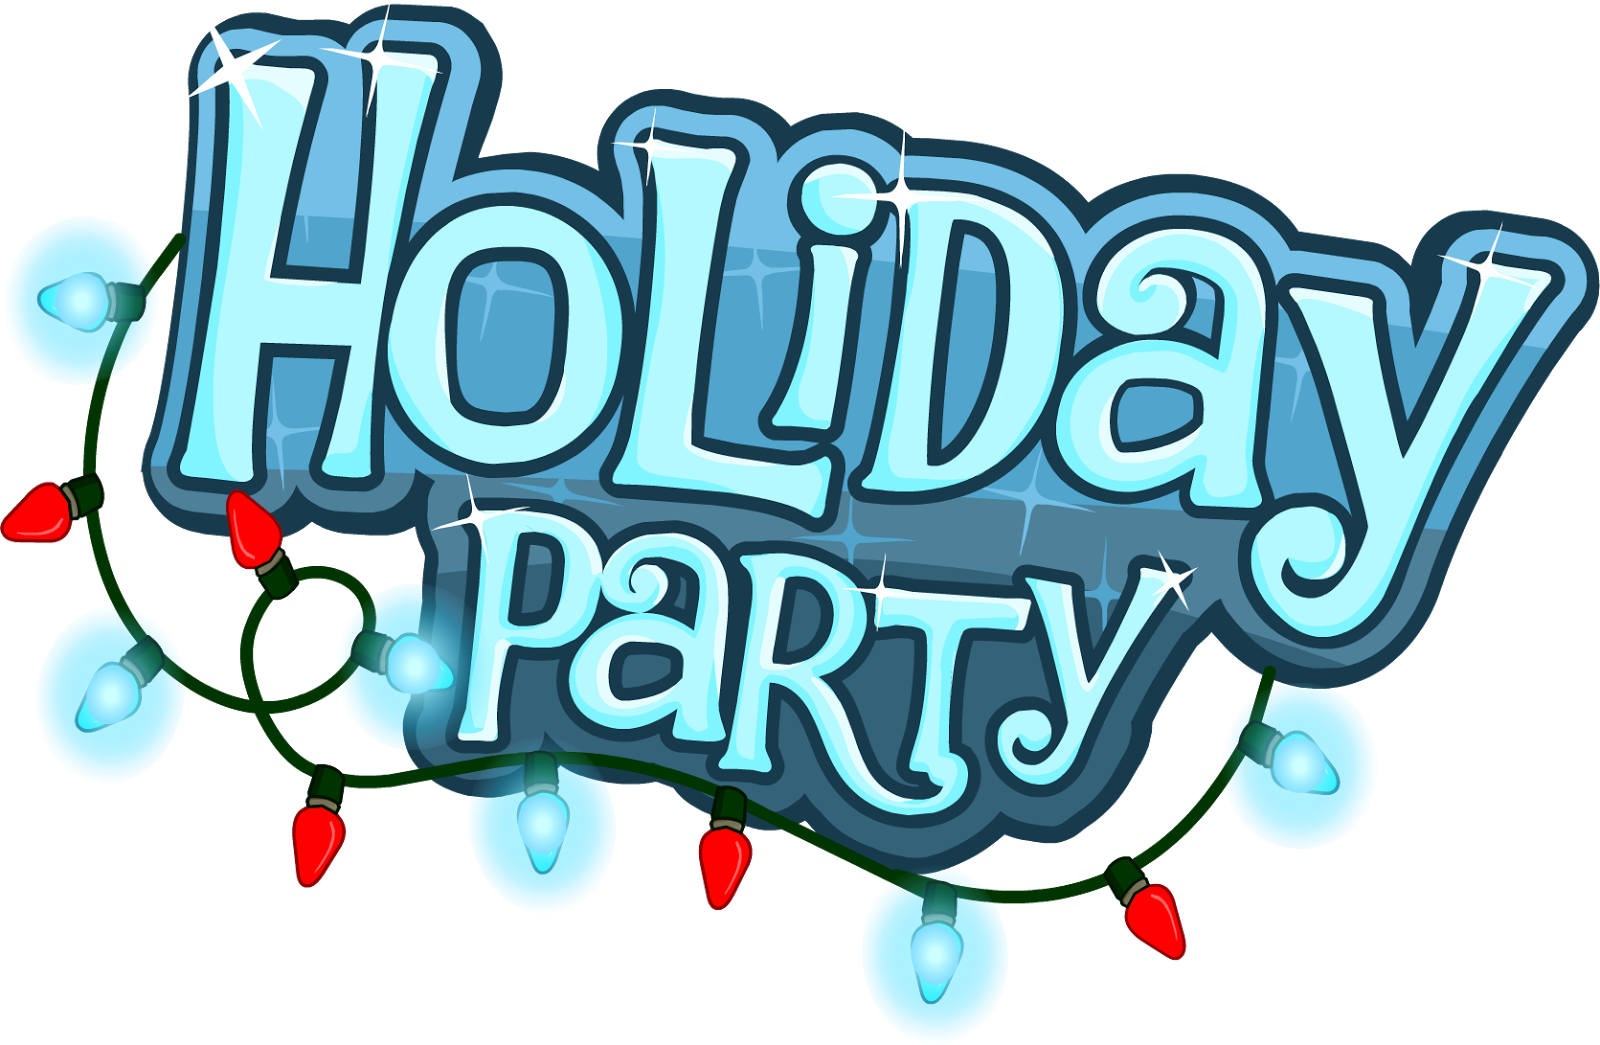 Holiday cdce fc e. Party clipart winter